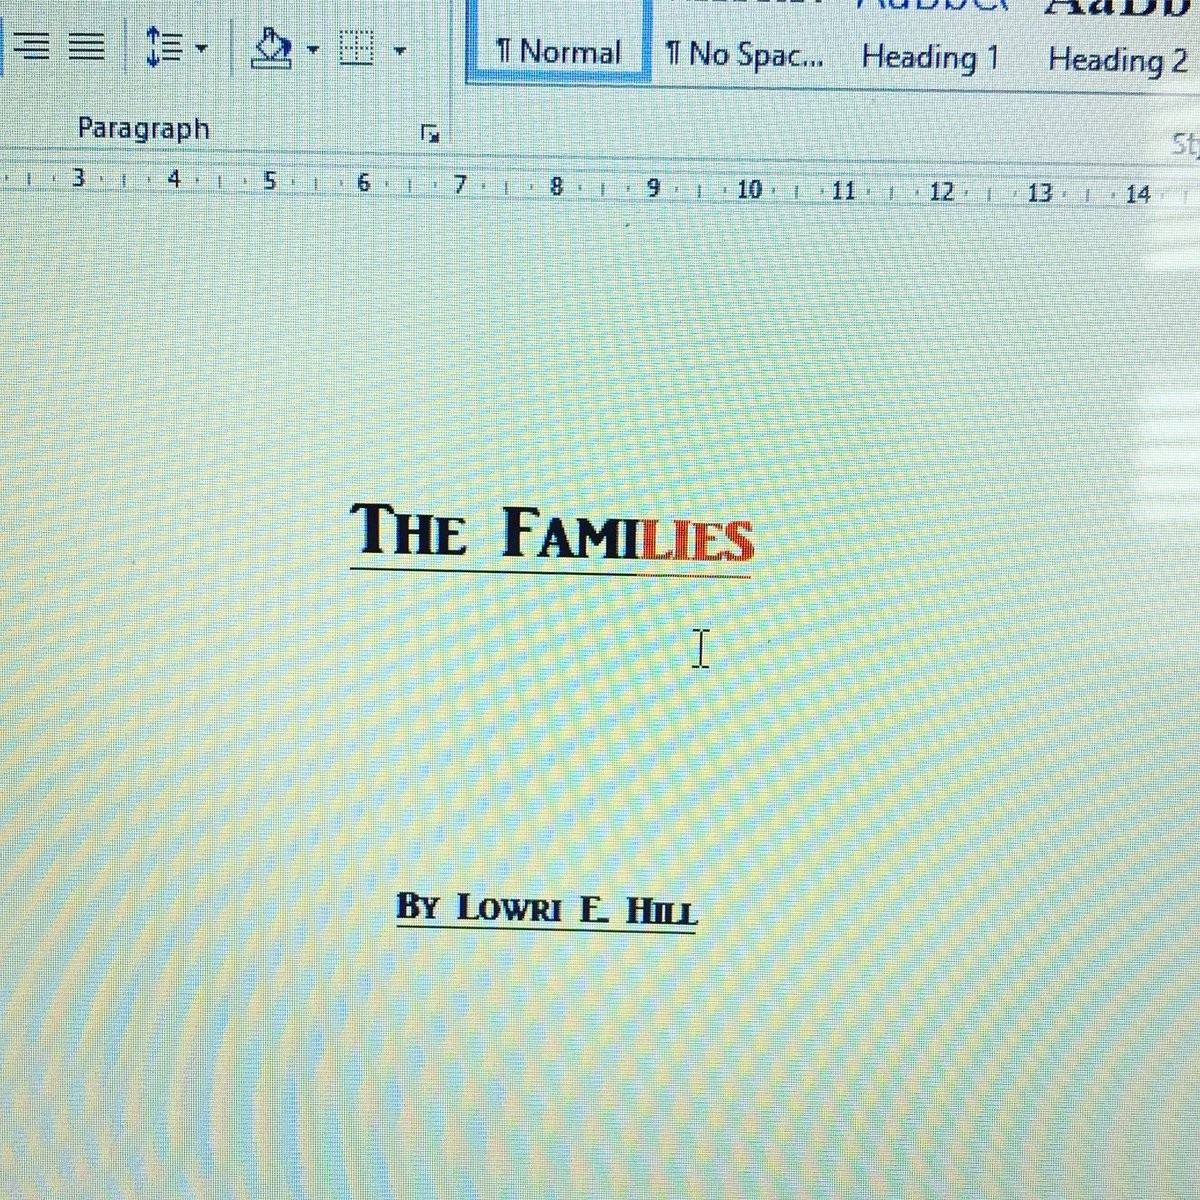 Exciting Times #TheFamilies #FirstDraft #writerscommunity #writerslife